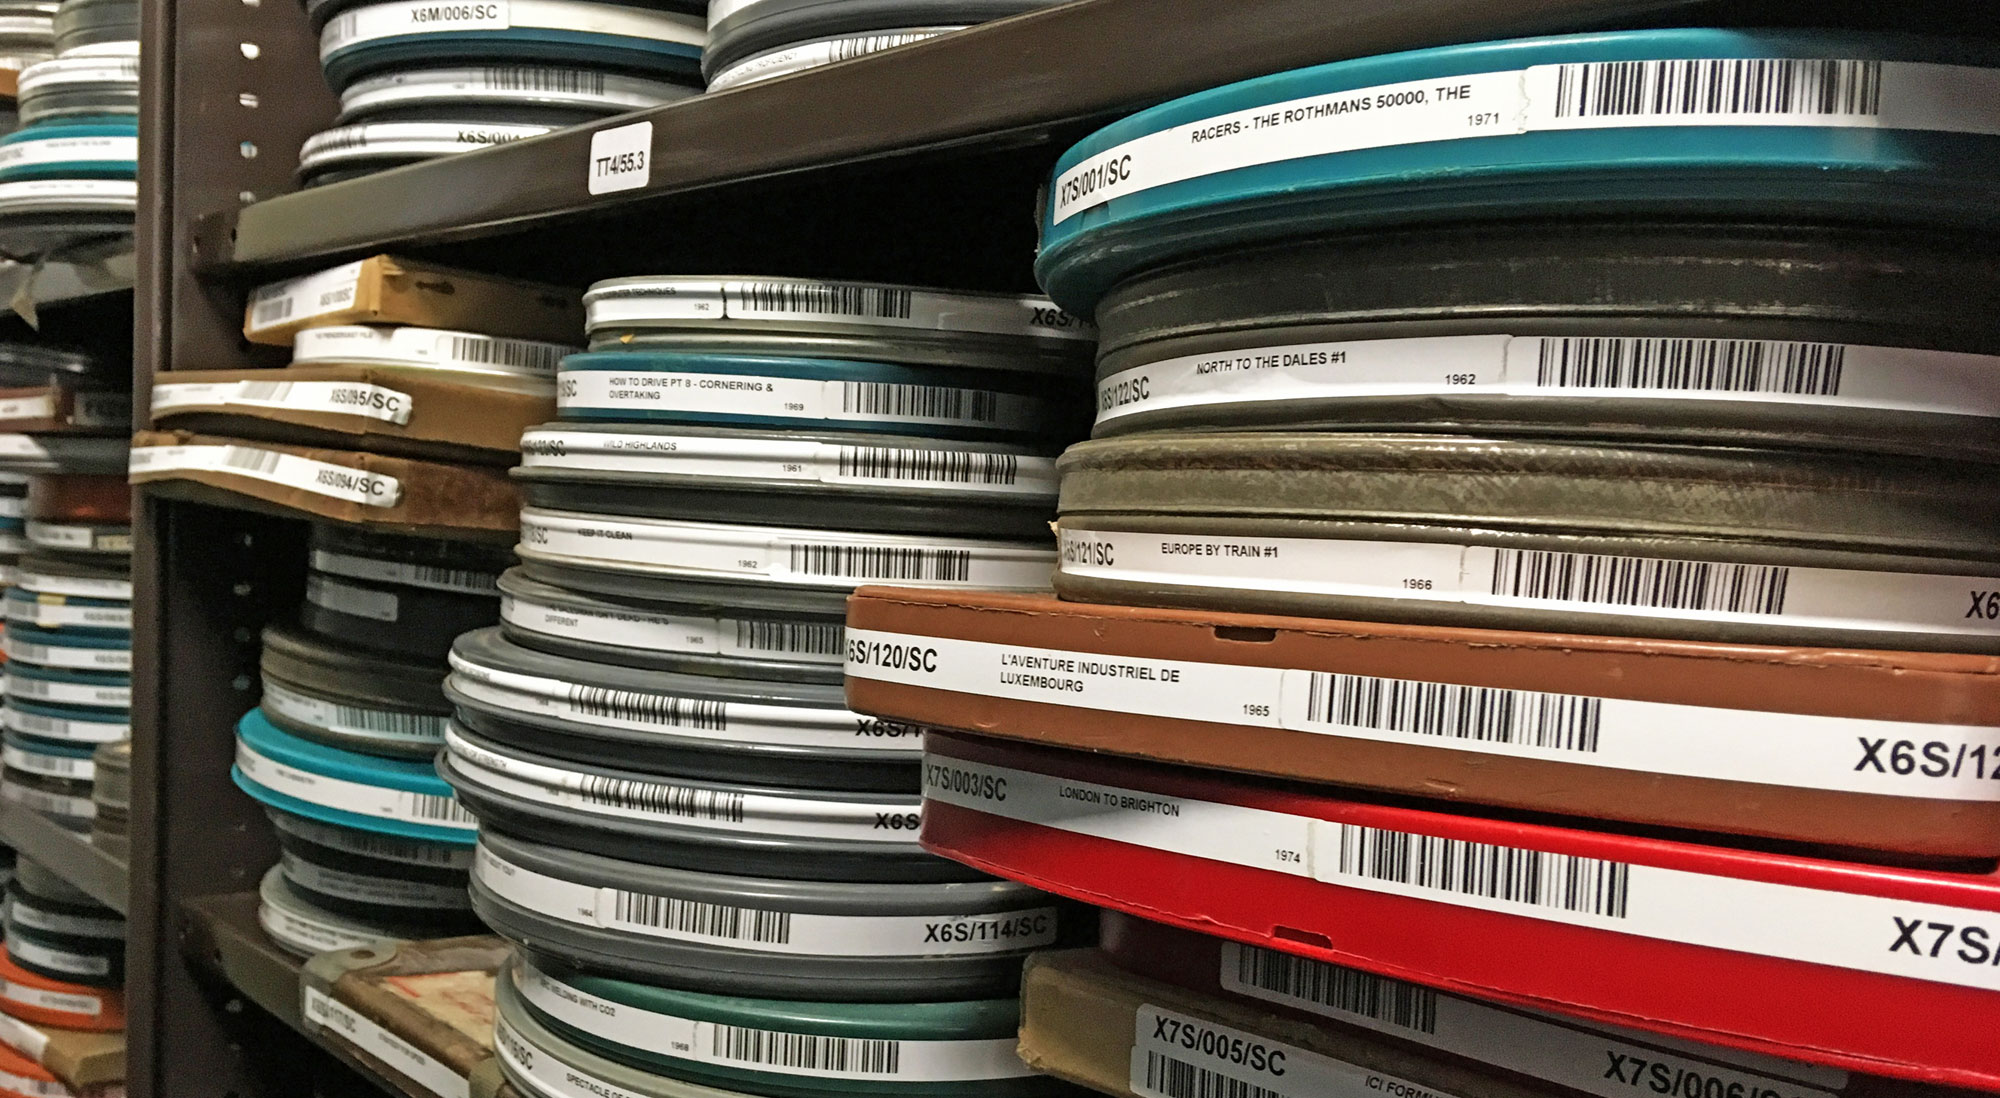 Stacks of film canisters